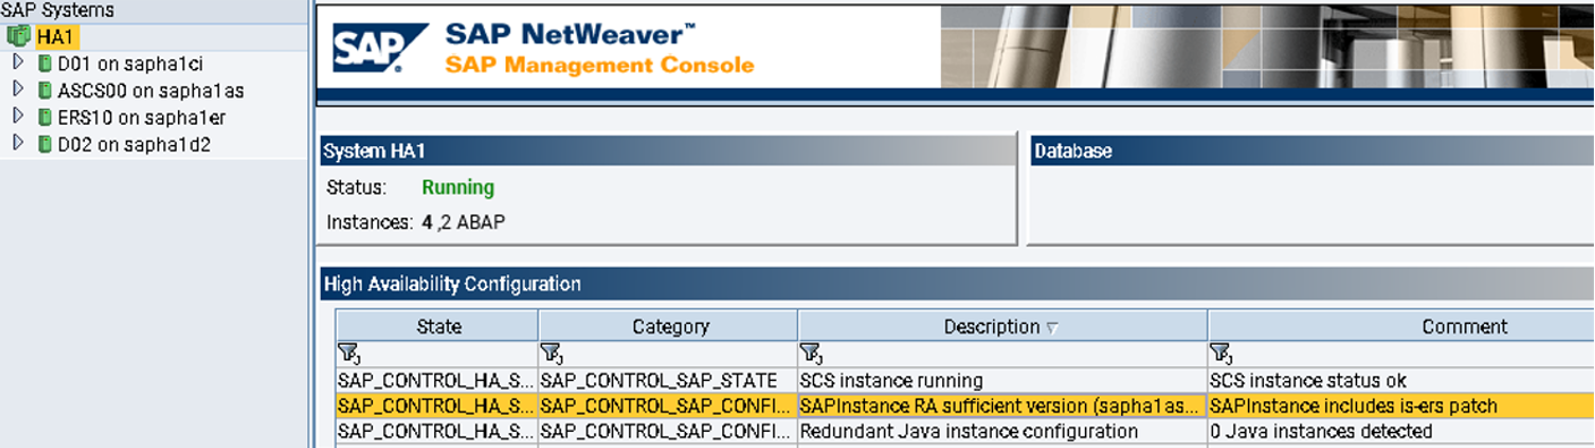 SAP NetWeaver SUSE Cluster Integration - the *new